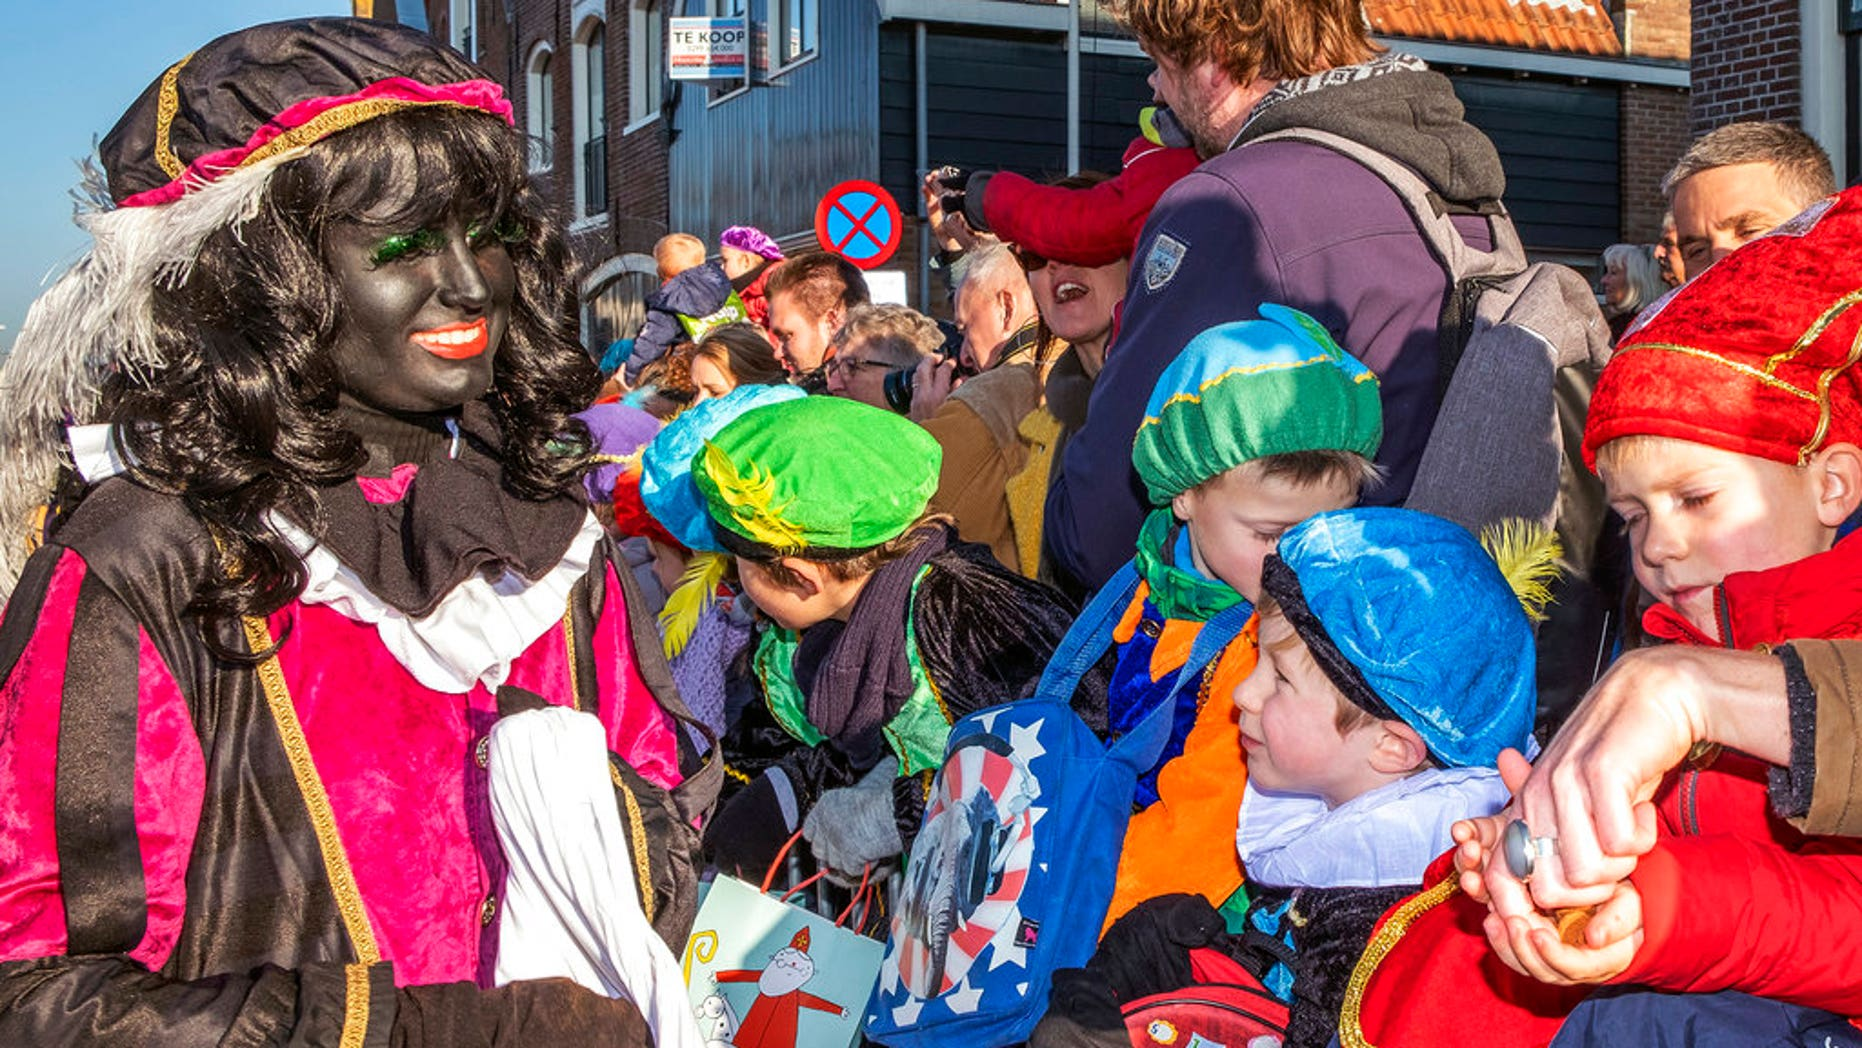 A Black Pete interacts with children during the arrival of Sinterklaas in Monnickendam, Netherlands, Saturday, Nov. 17, 2018. White people often daub their faces with black paint when they dress up to play the character. Opponents say such depictions of Black Pete promote racist stereotypes. Supporters defend the sidekick of Sinterklaas, the white-bearded, red-robed Dutch version of St. Nicholas, as a traditional children's character. (AP Photo/Patrick Post)